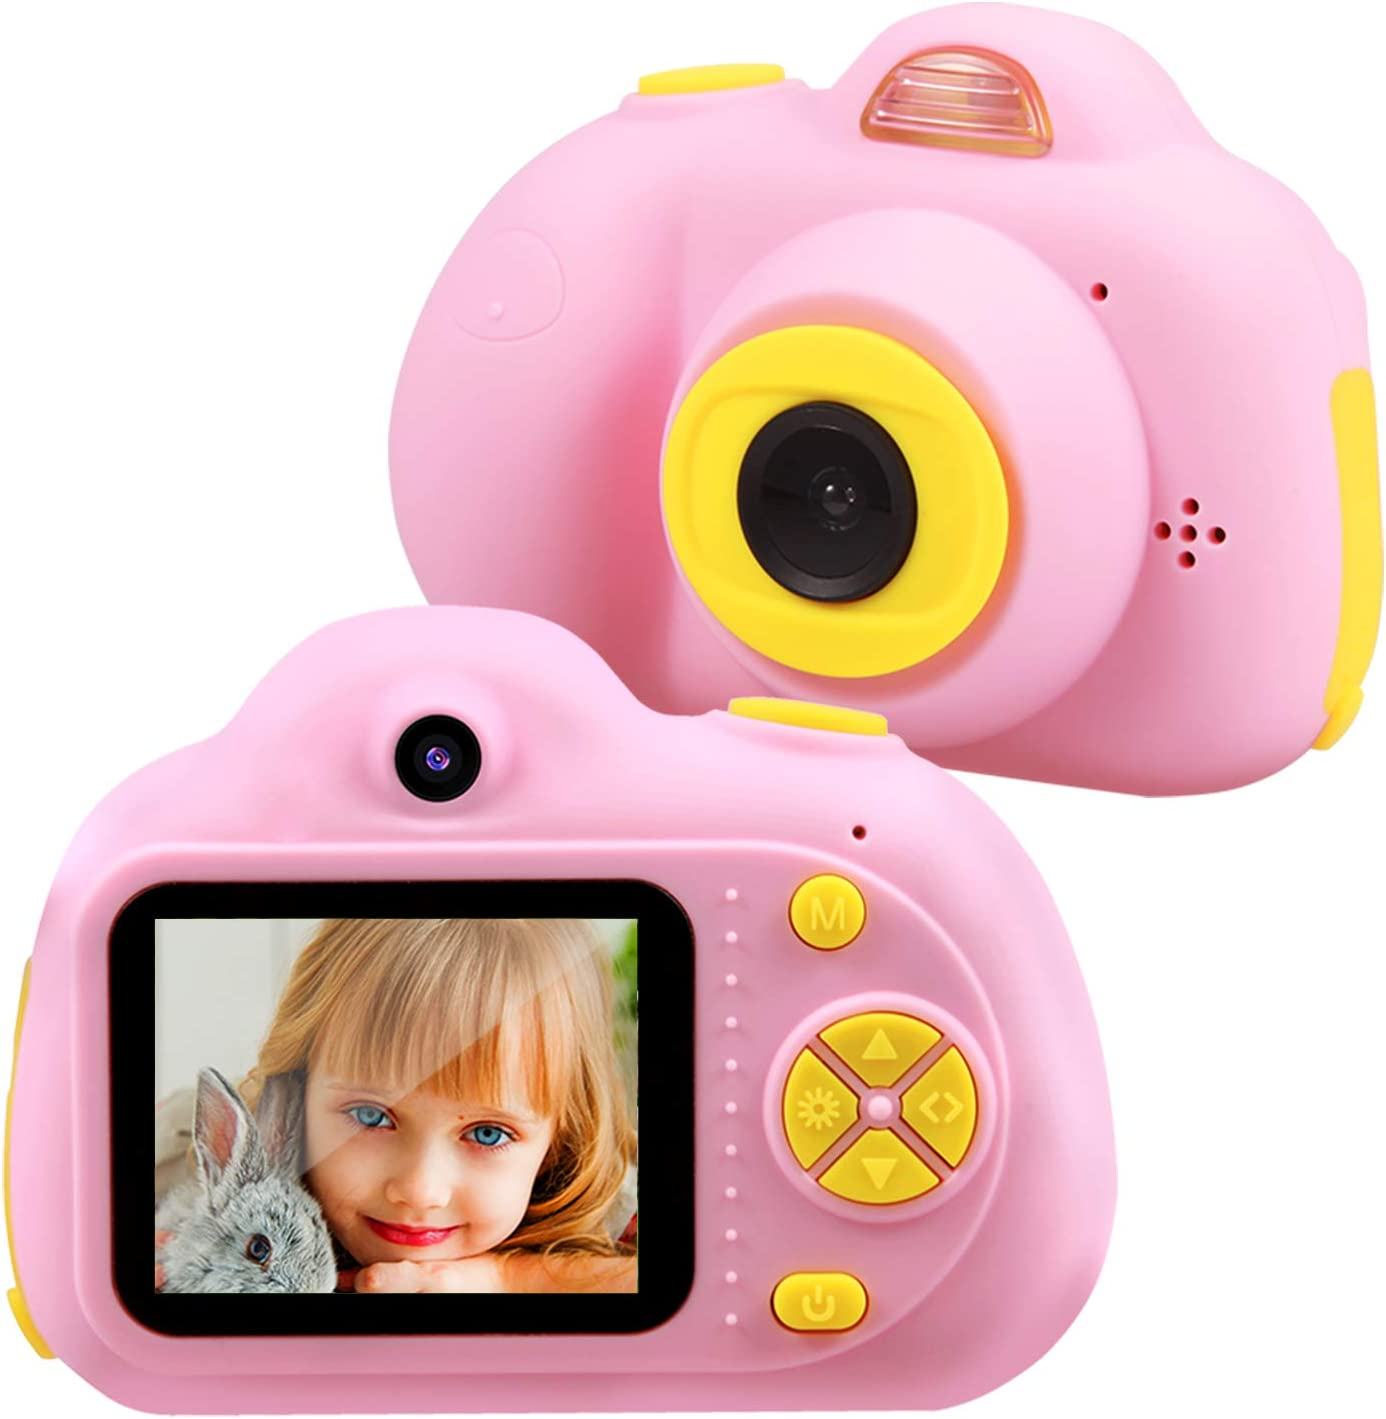 Amazon Com Tekhome Birthday Gifts For 4 5 6 Year Old Girls Kids Camera Top Toys For Girls Age 3 12 Best Gift Ideas For Christmas Easter Pink Toys Games